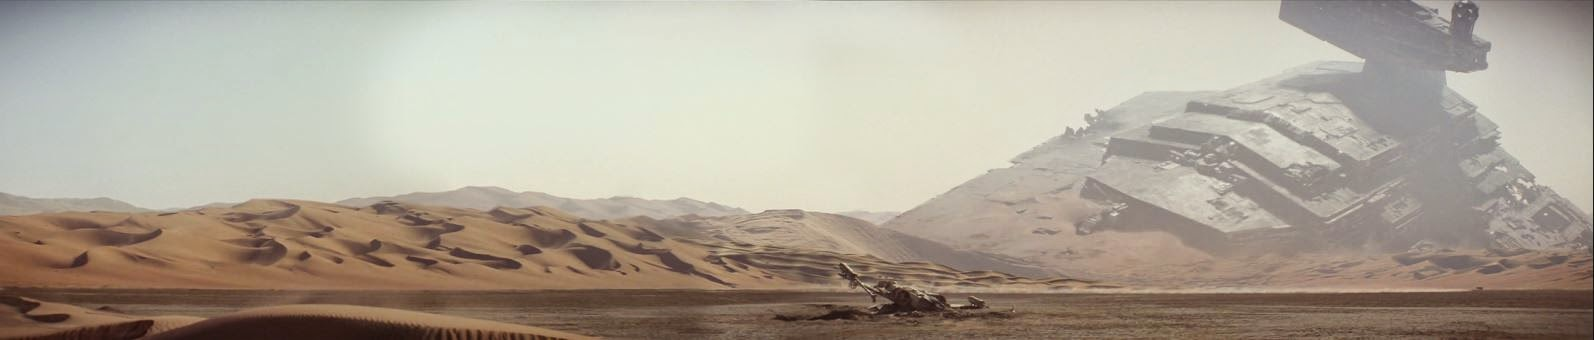 Planet Jakku from The Force Awakens